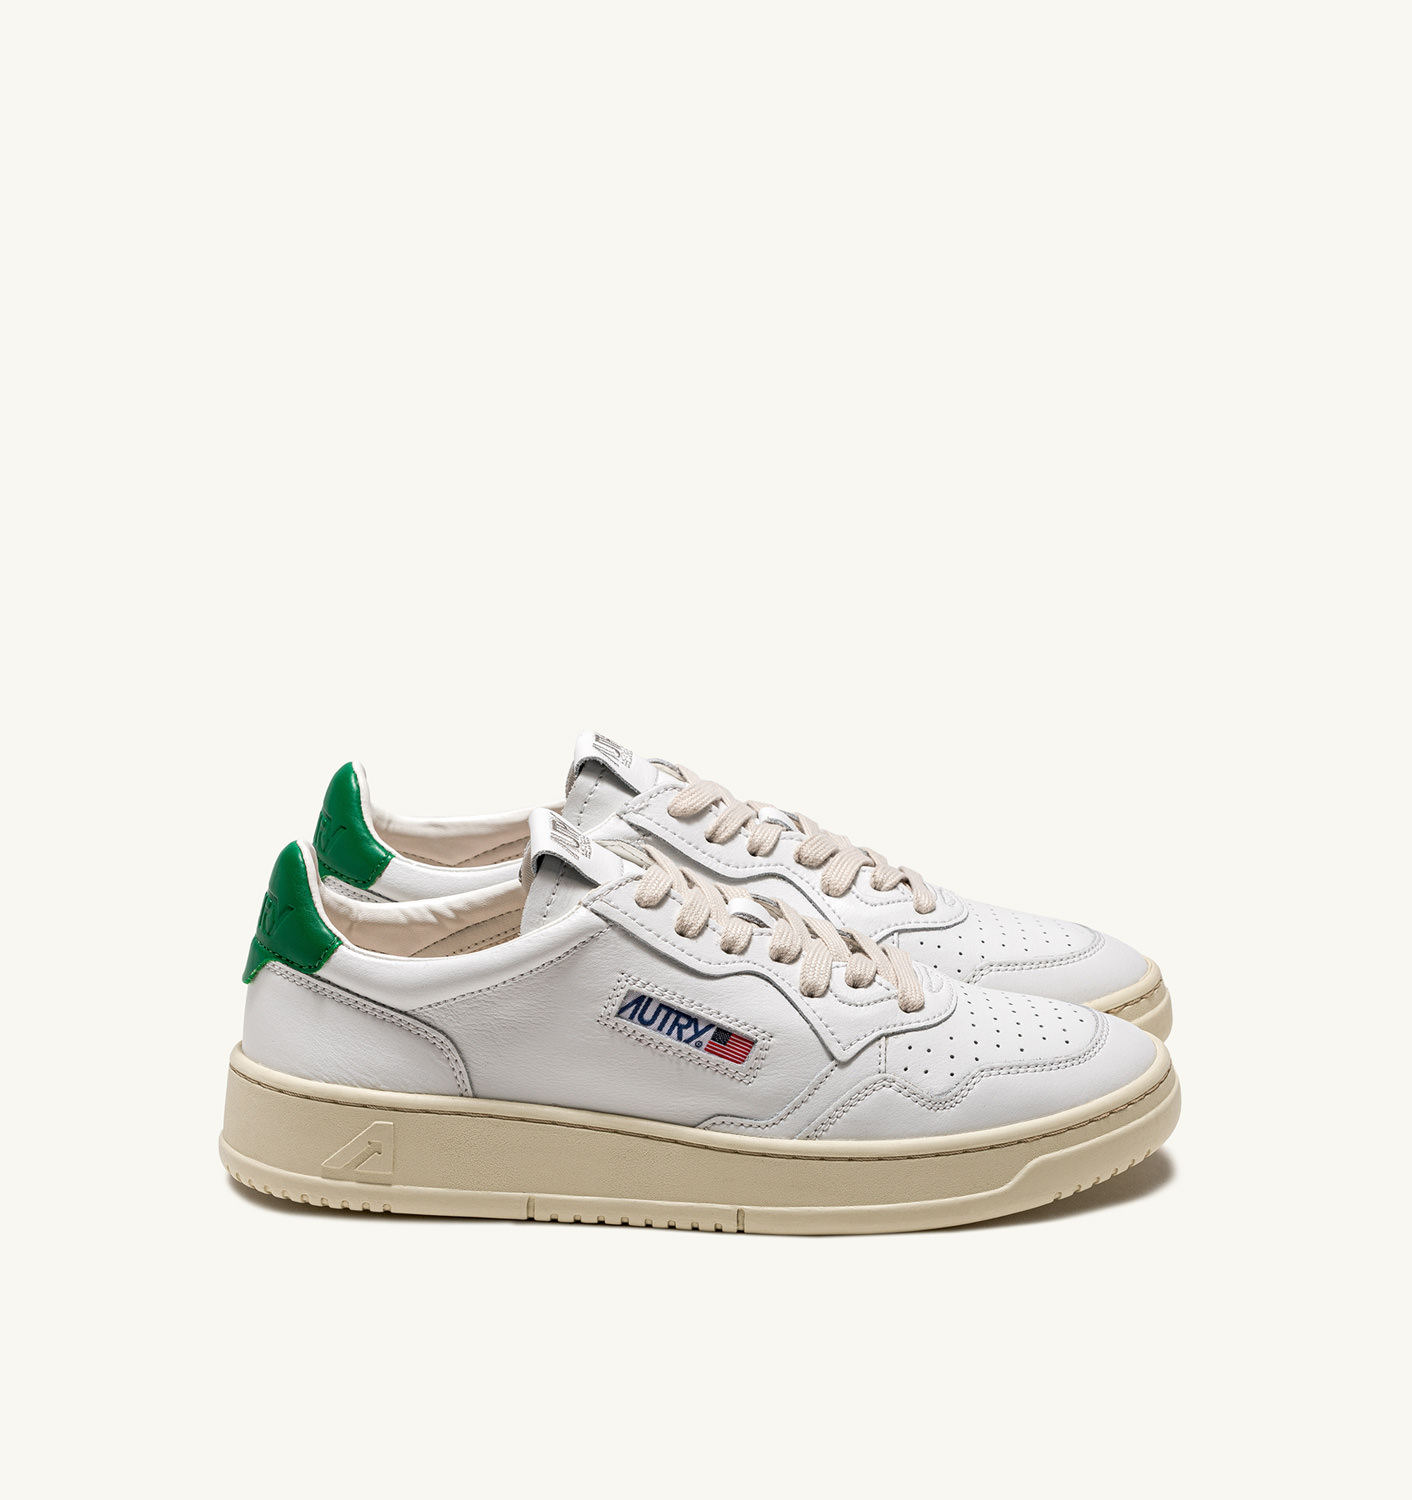 AUTRY: MEDALIST LOW SNEAKERS IN LEATHER COLOR WHITE GREEN